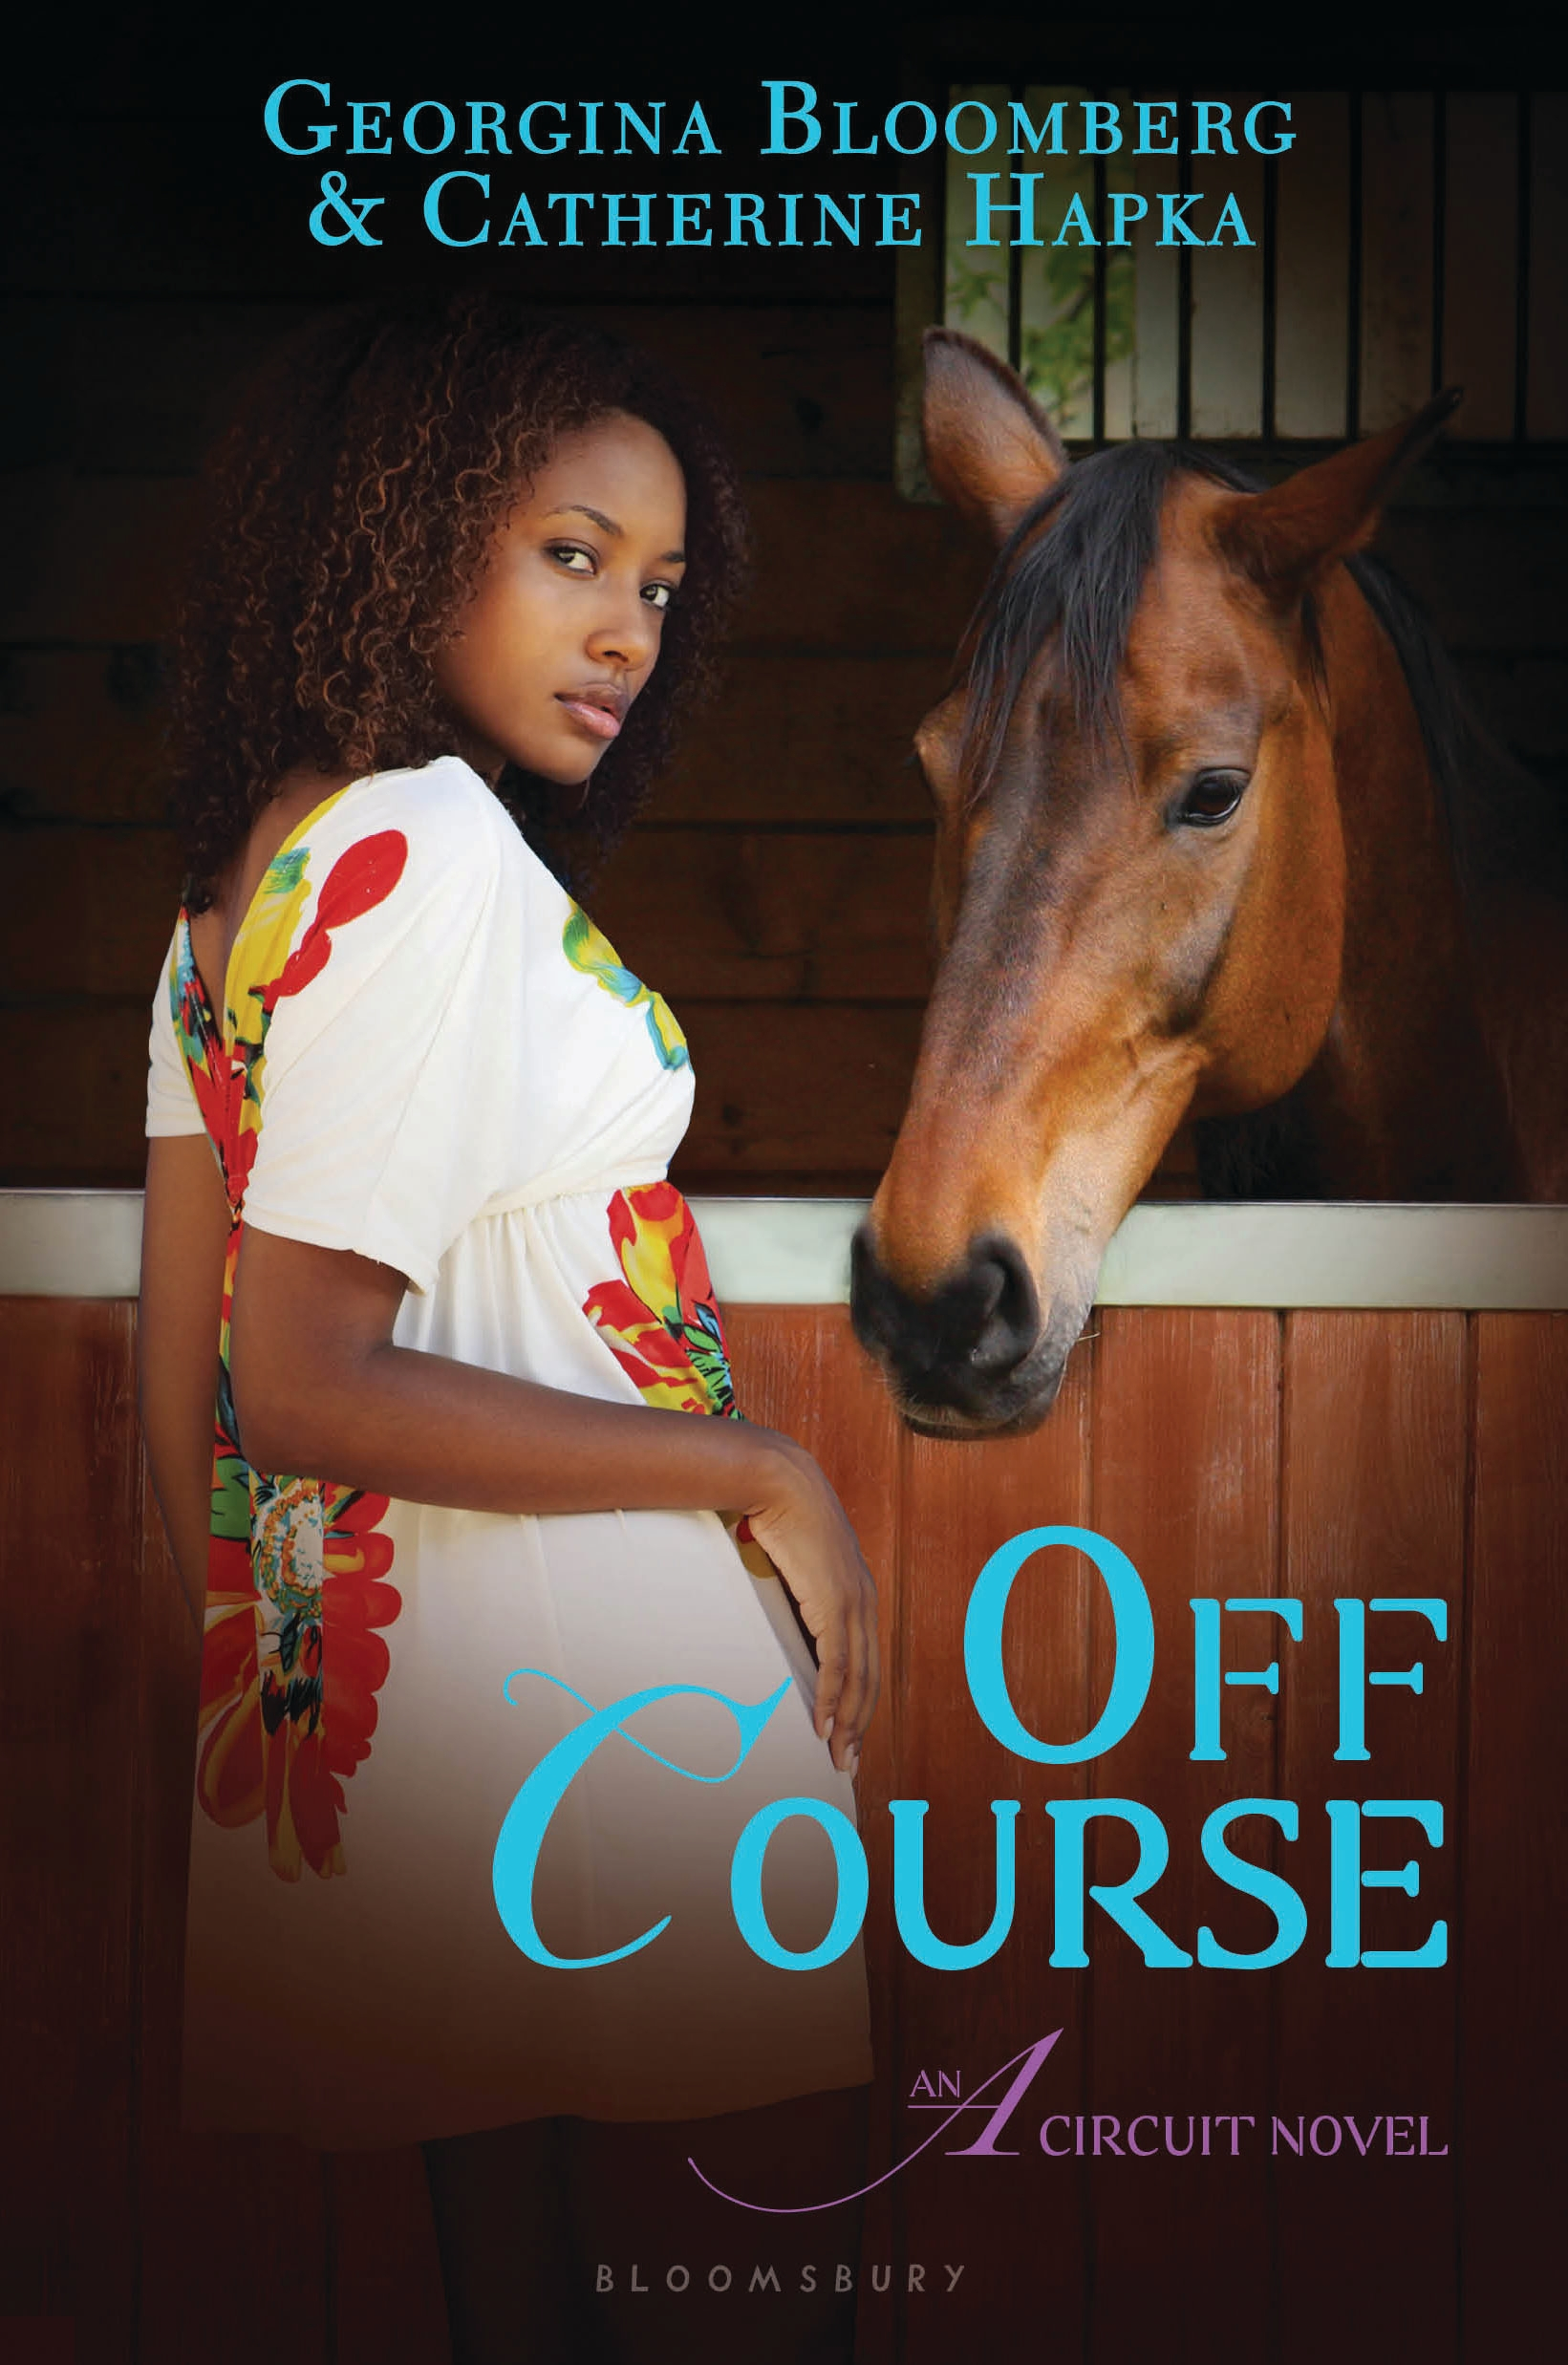 Off Course: An A Circuit Novel